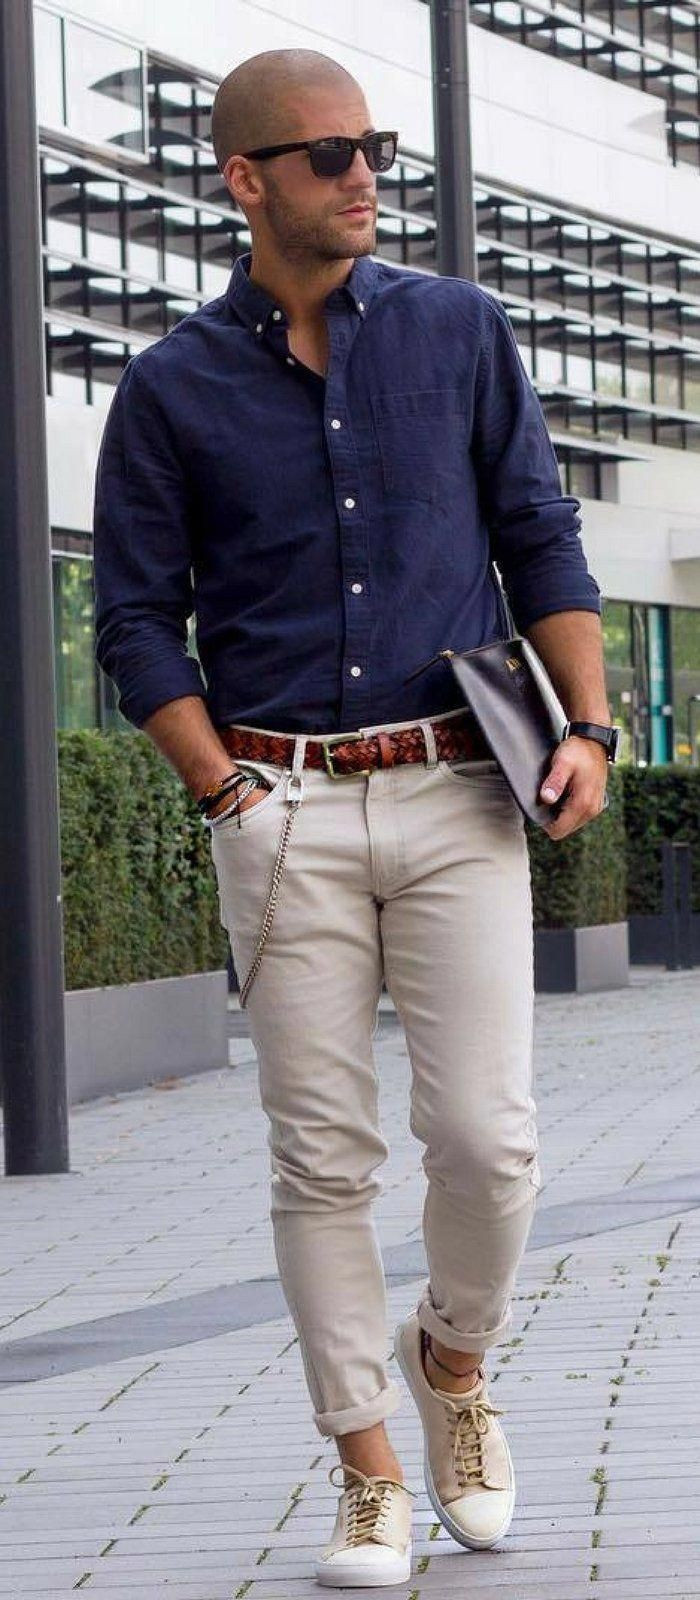 db8a8c7f52a 15 Coolest Outfit Ideas For The Summers – LIFESTYLE BY PS   MensFashionAccessories  MensFashionSummer